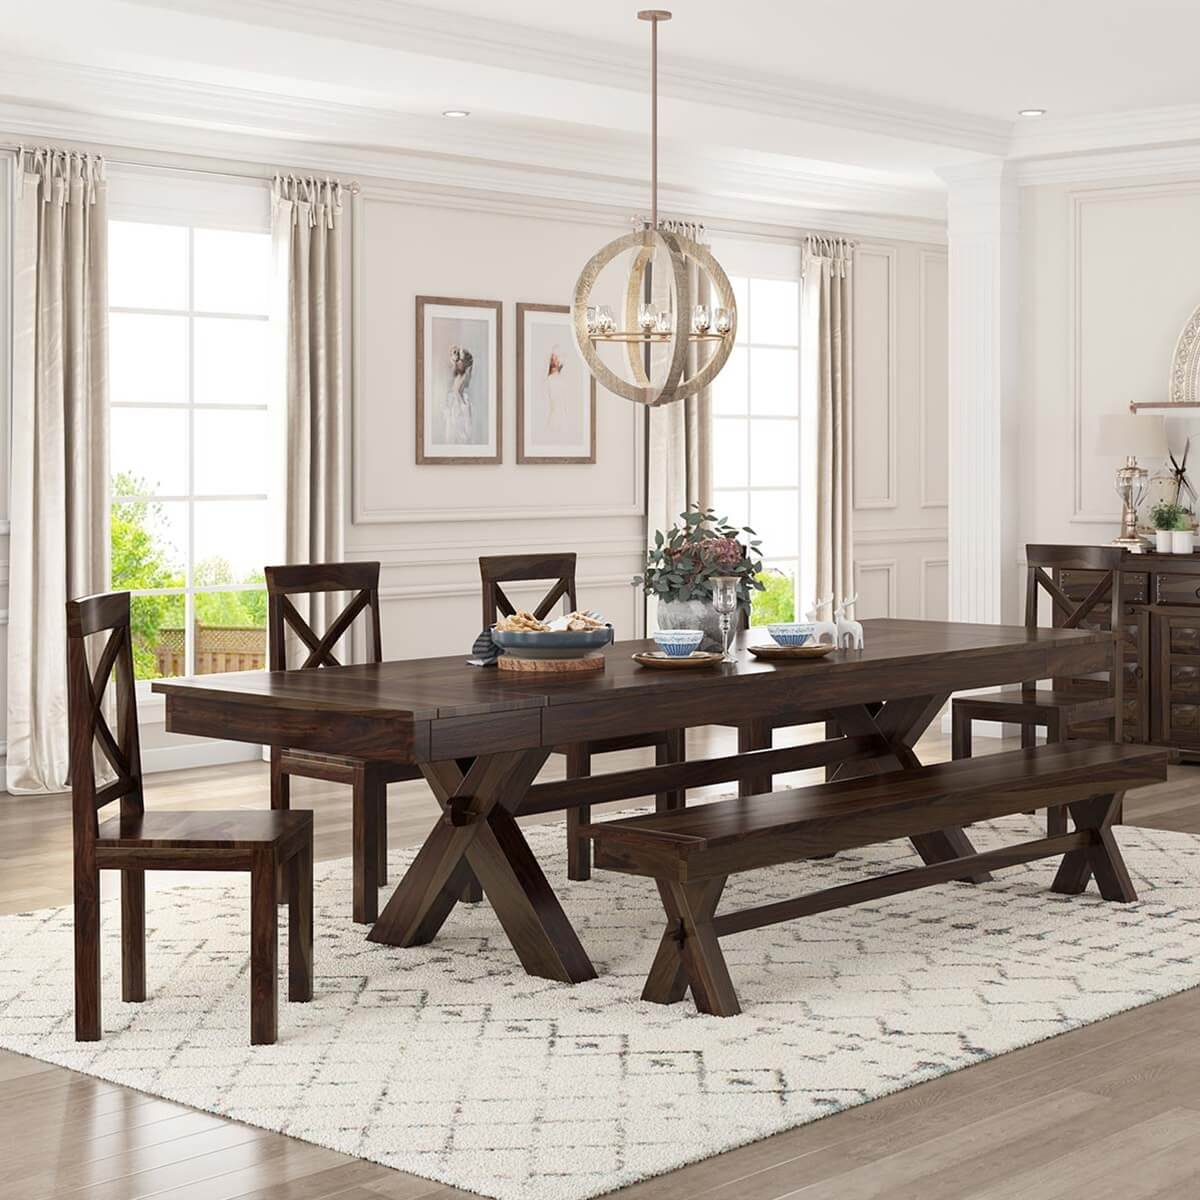 Westside Indoor Picnic Style Dining Table Bench Set with